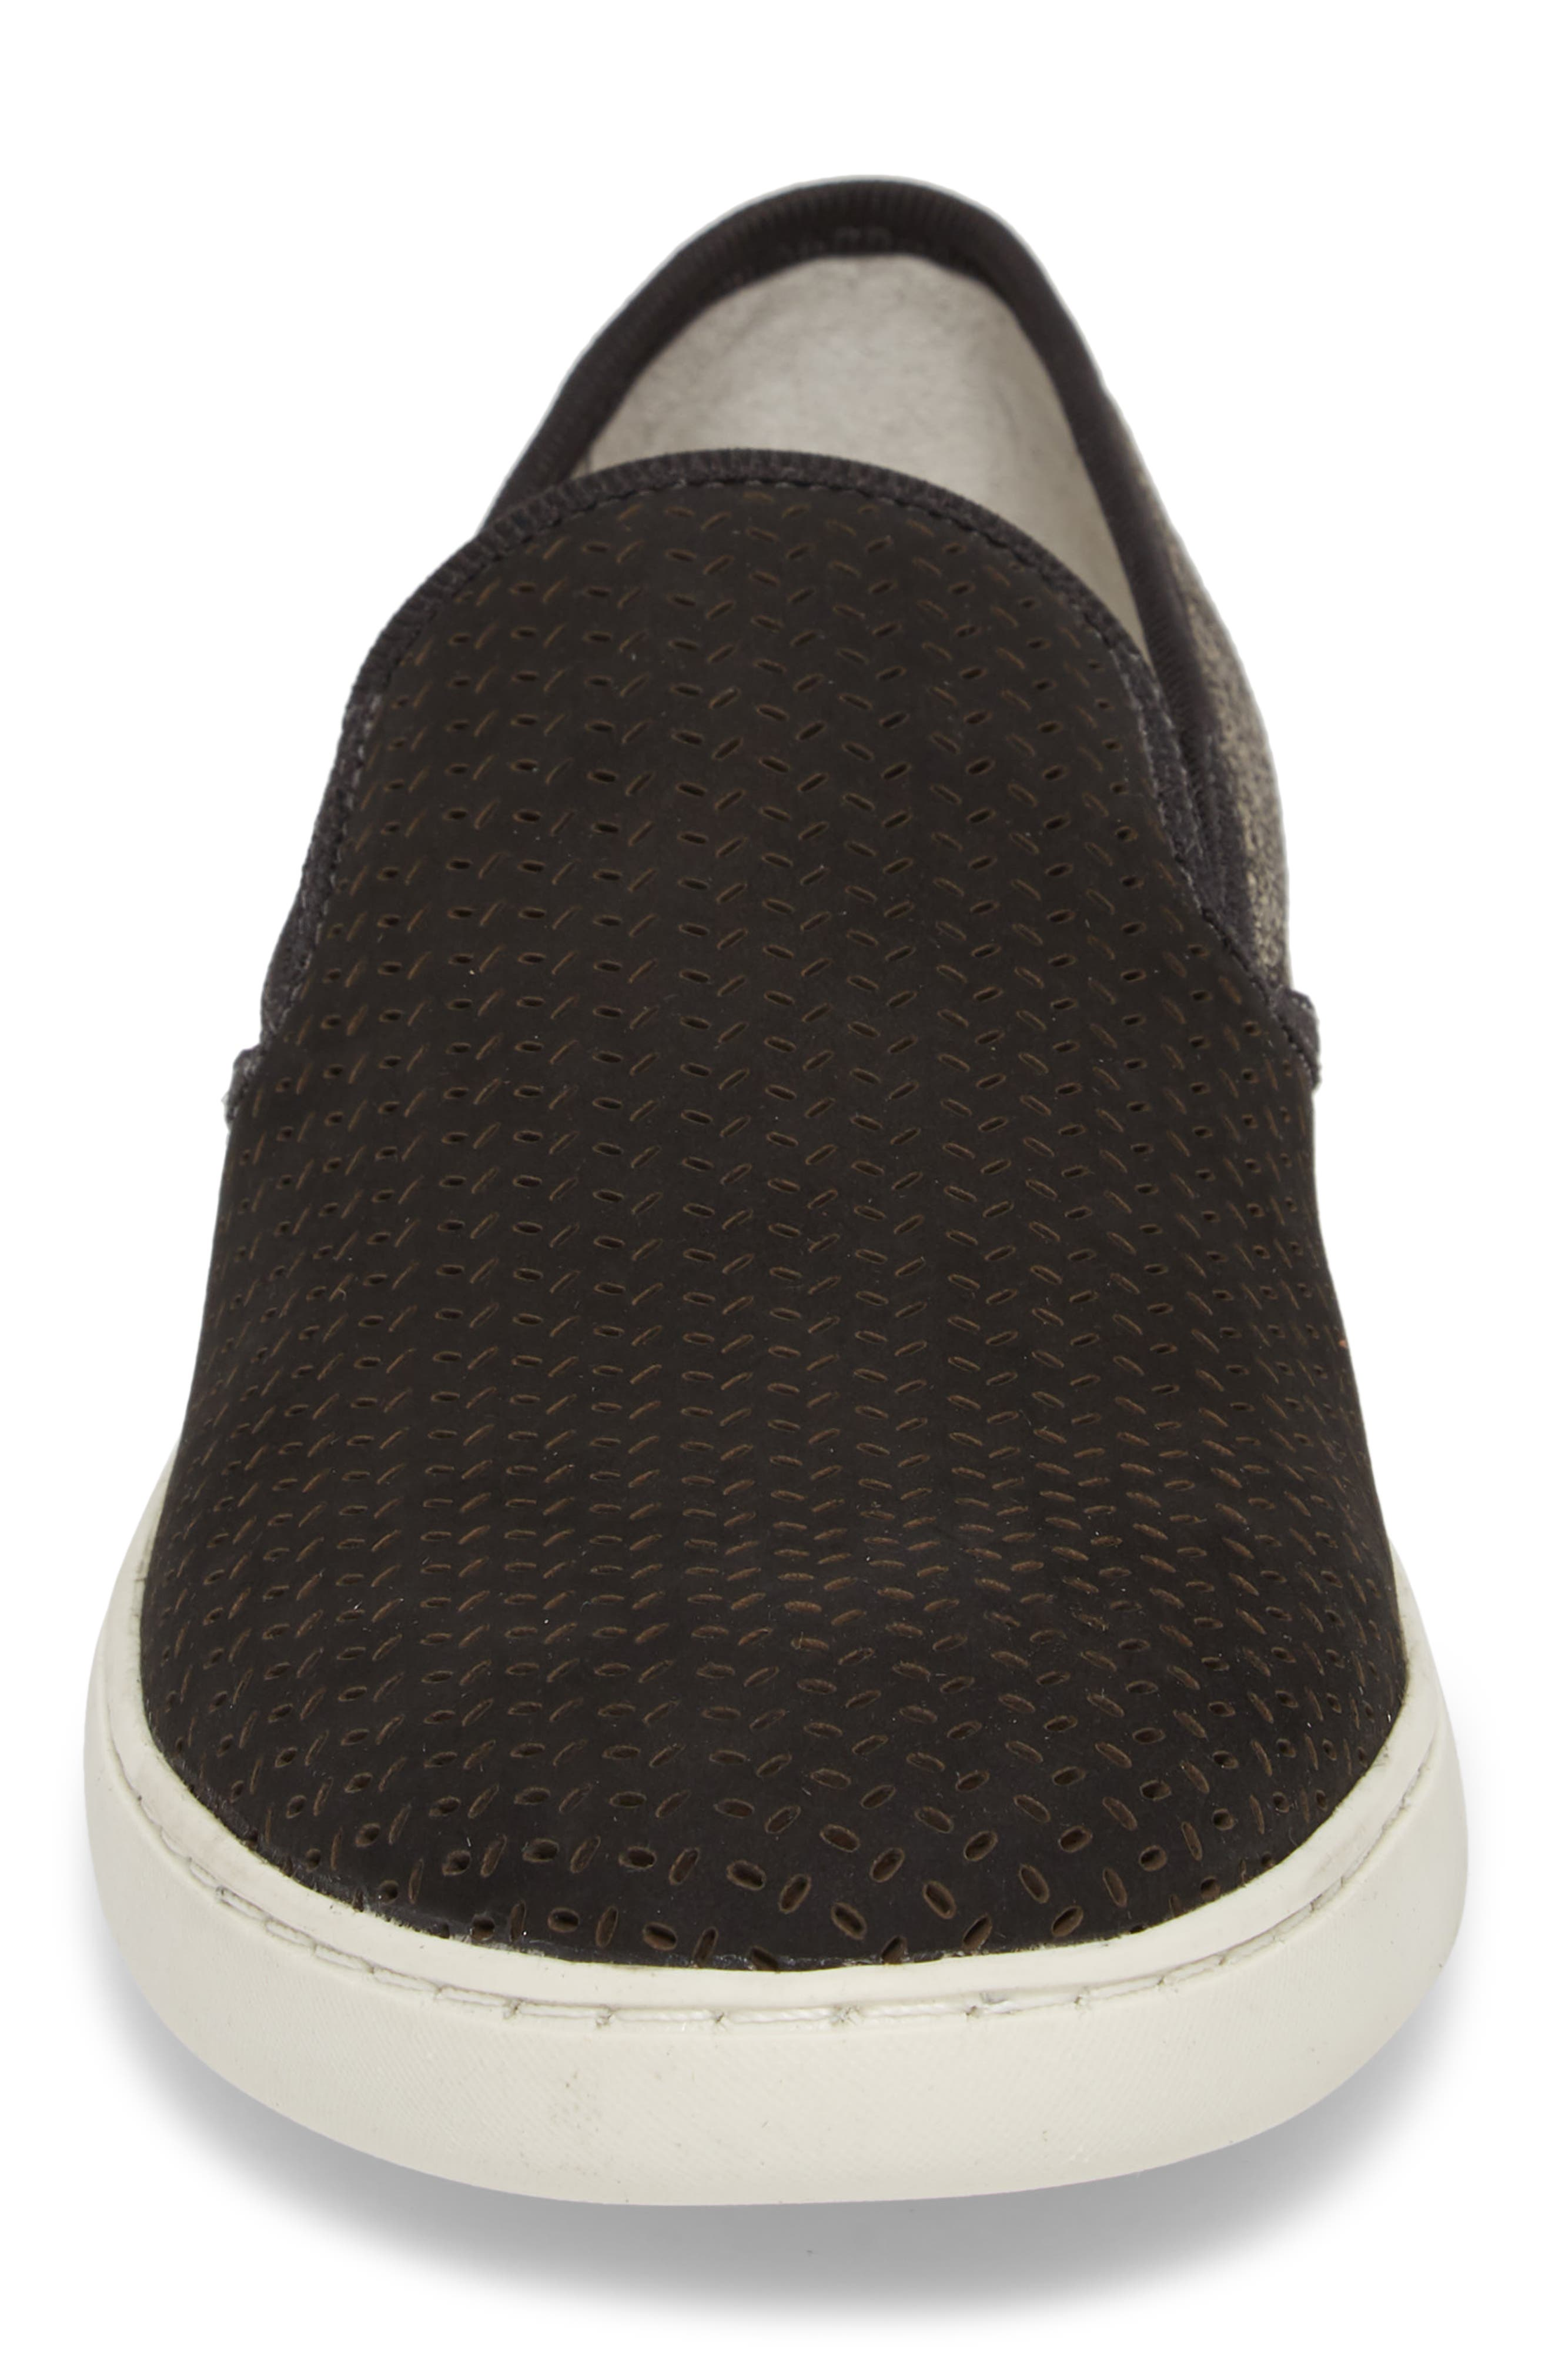 Malibu Perforated Loafer,                             Alternate thumbnail 4, color,                             BLACK LEATHER / GREY CANVAS